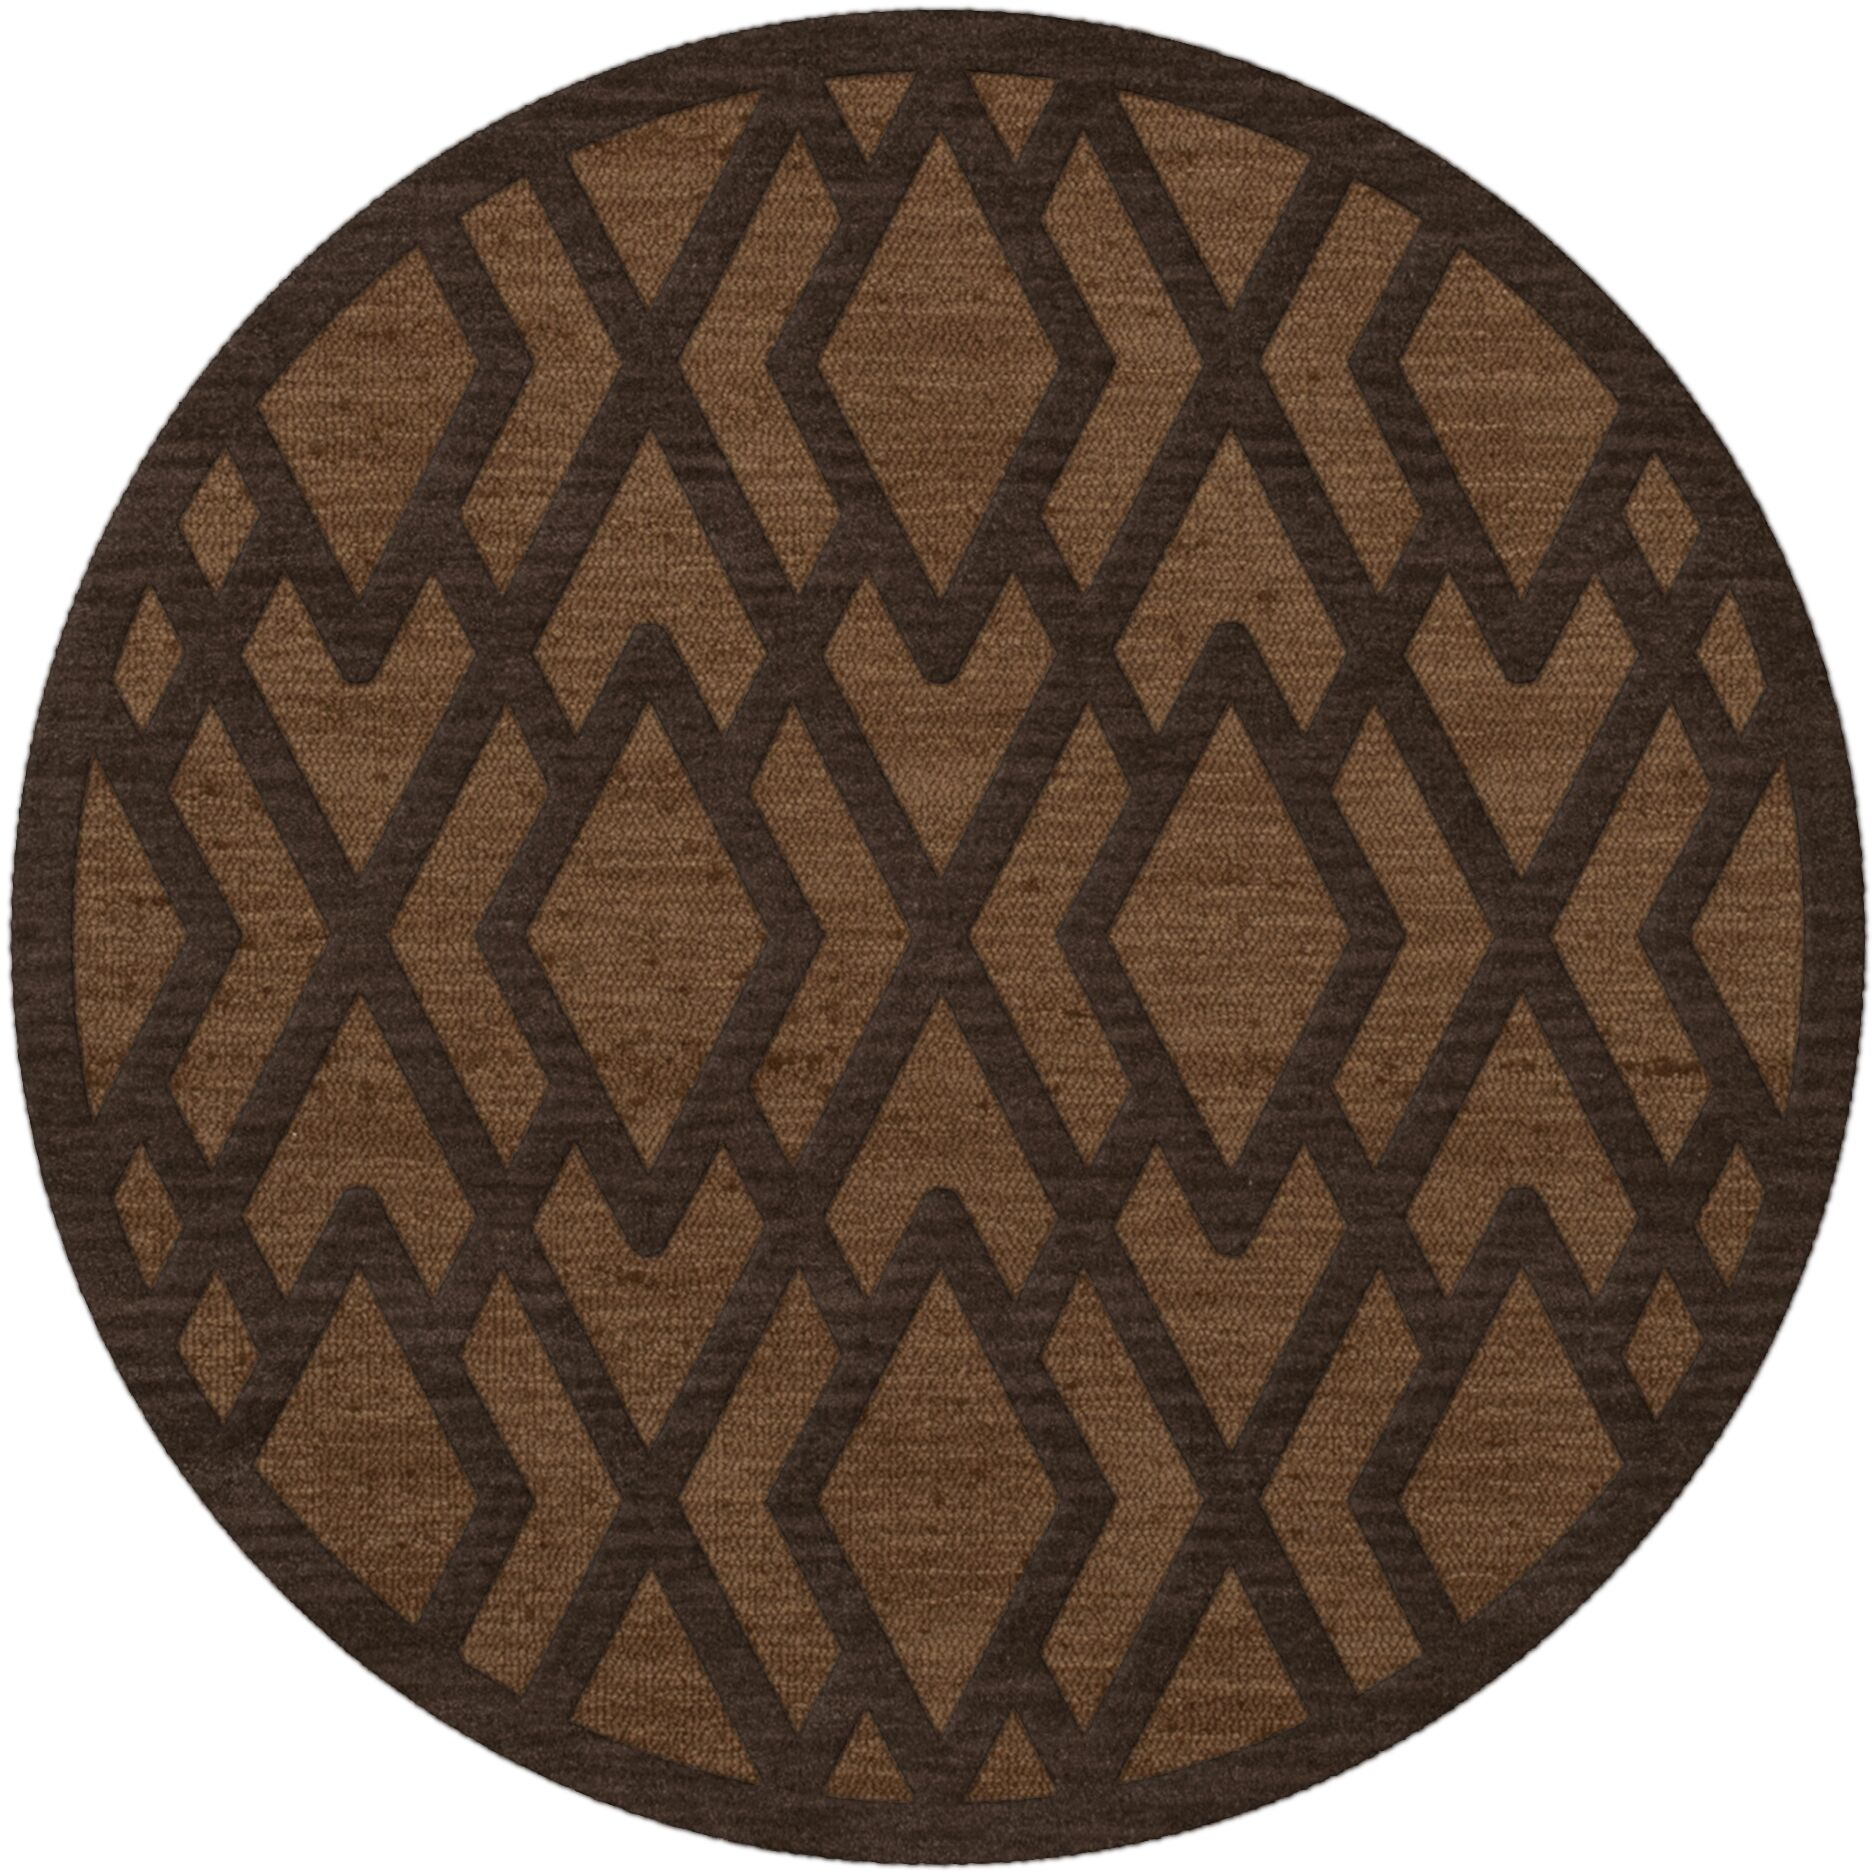 Dover Tufted Wool Caramel Area Rug Rug Size: Round 6'